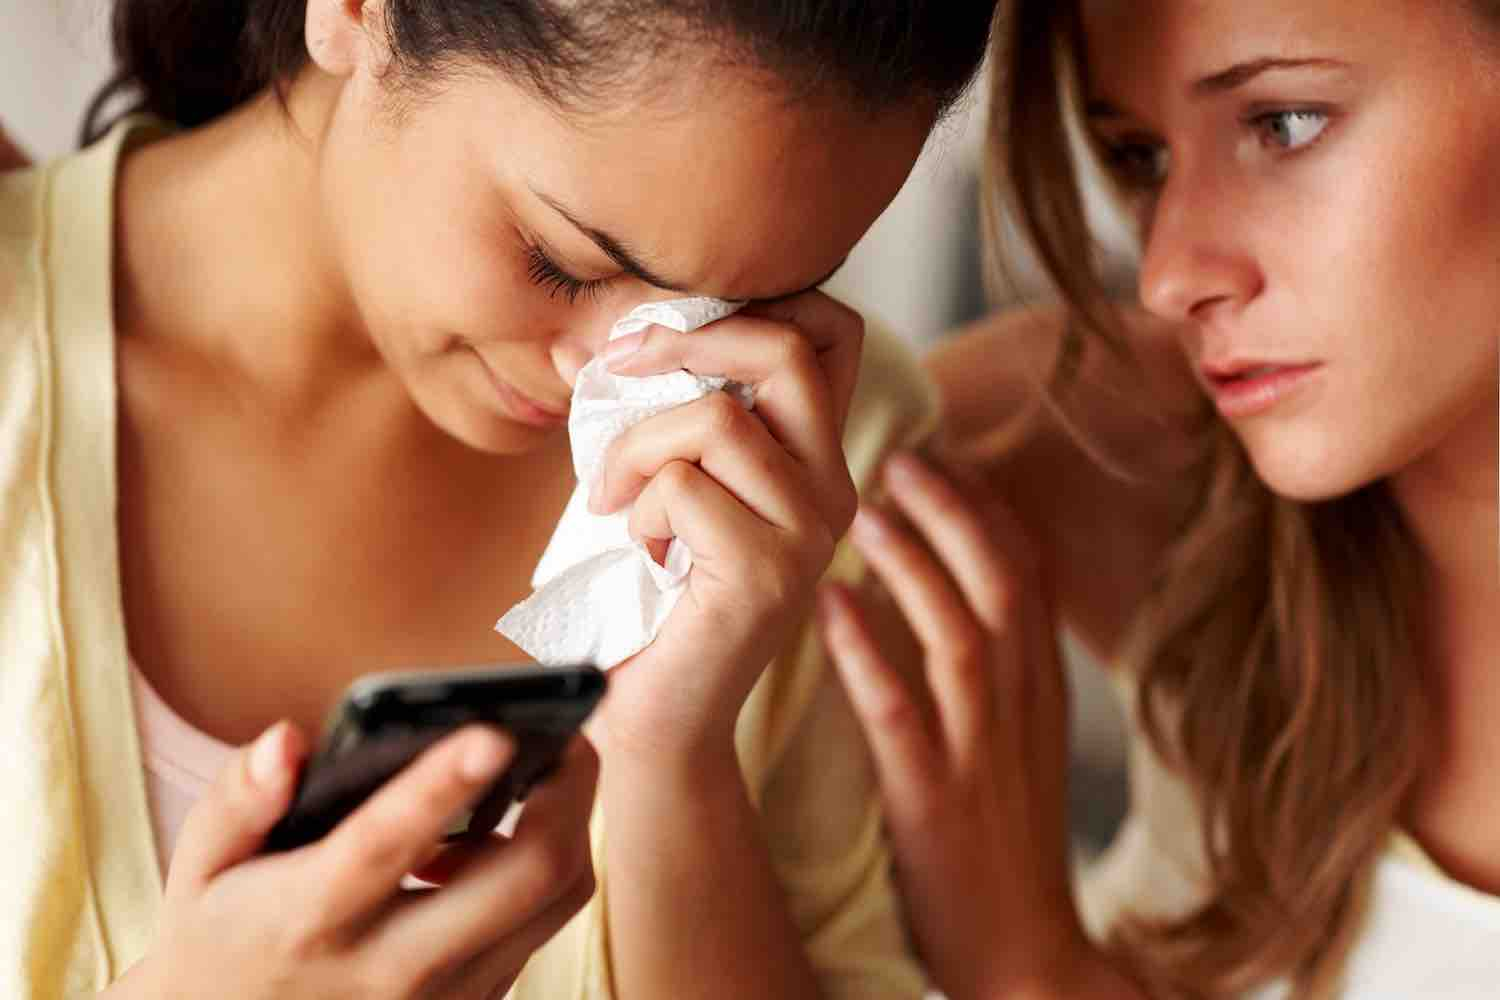 Closeup portrait of a woman crying holding a mobile phone with a friend consoling her